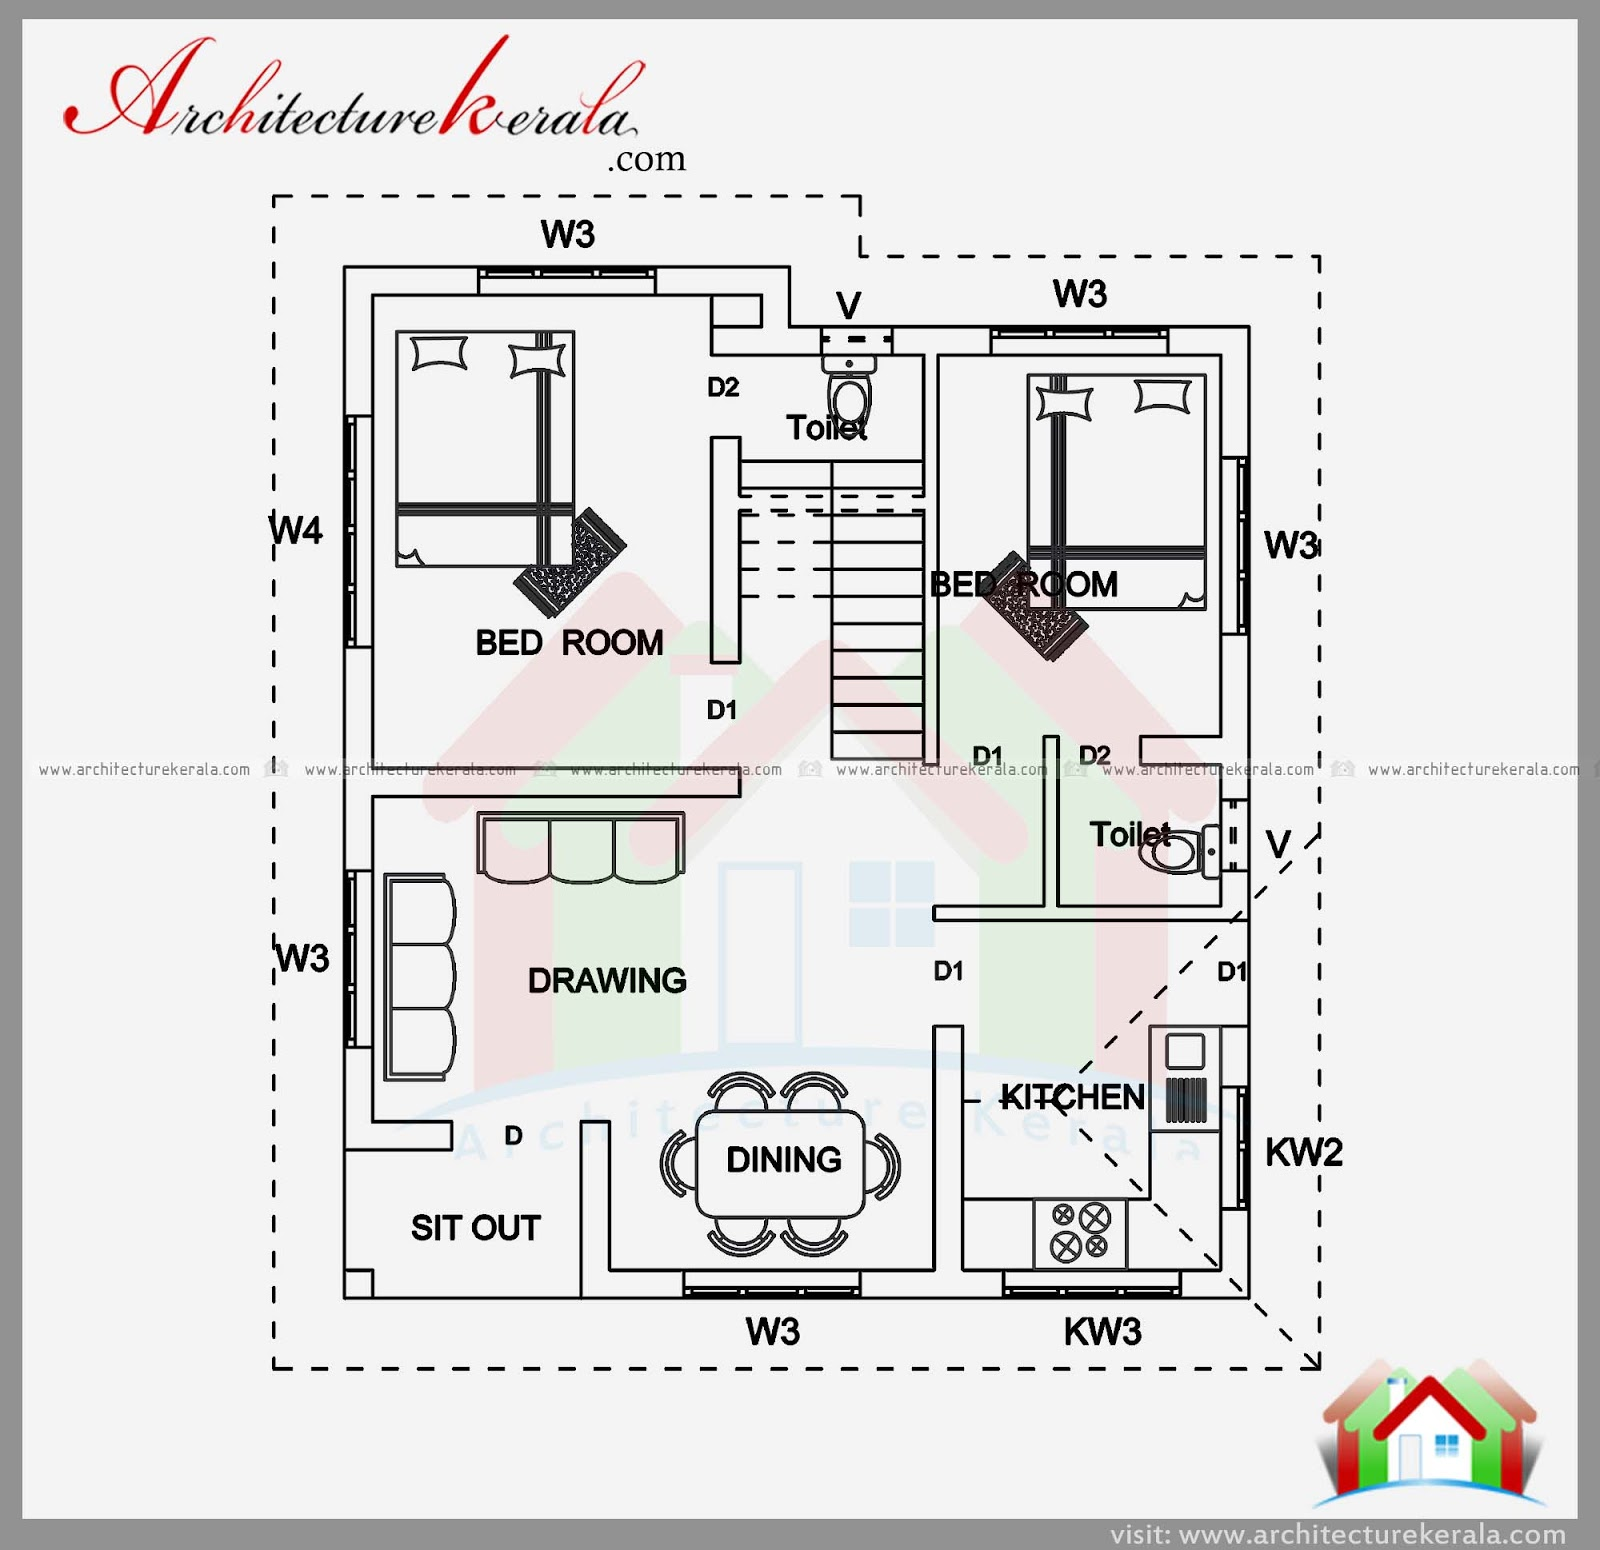 2 bedroom house plan and elevation in 700 sqft for 2 bedroom house plans in kerala